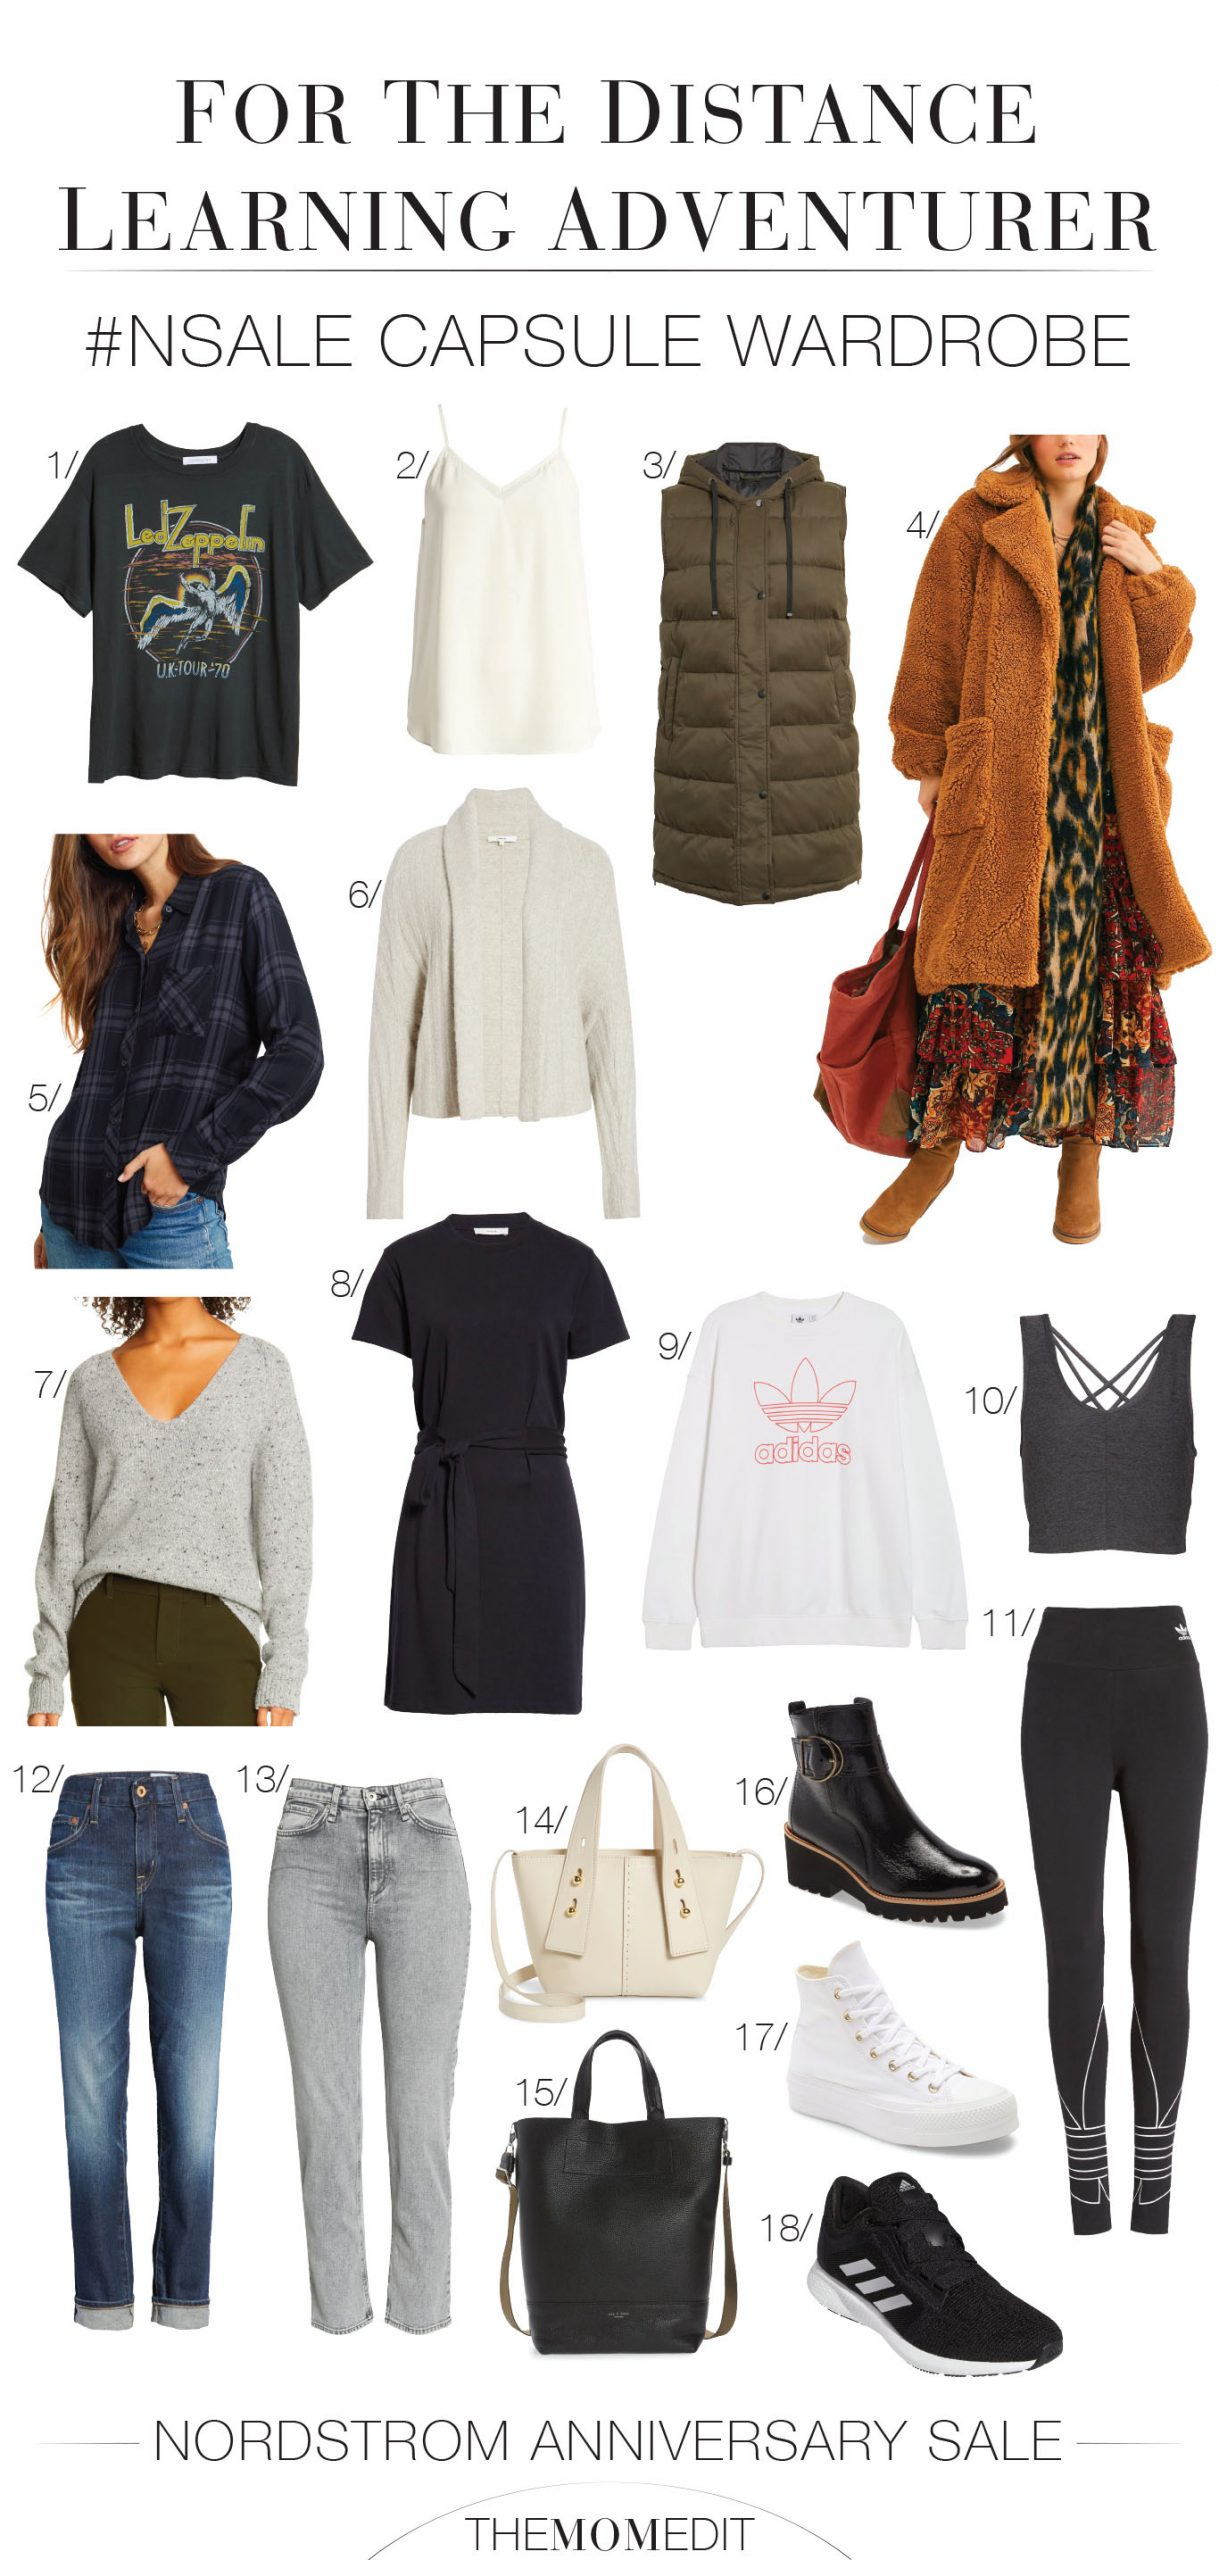 Remote learning = say yes to adventure! The Nordstrom Anniversary Sale offers the best deals for a road trip capsule wardrobe. Perfect timing!